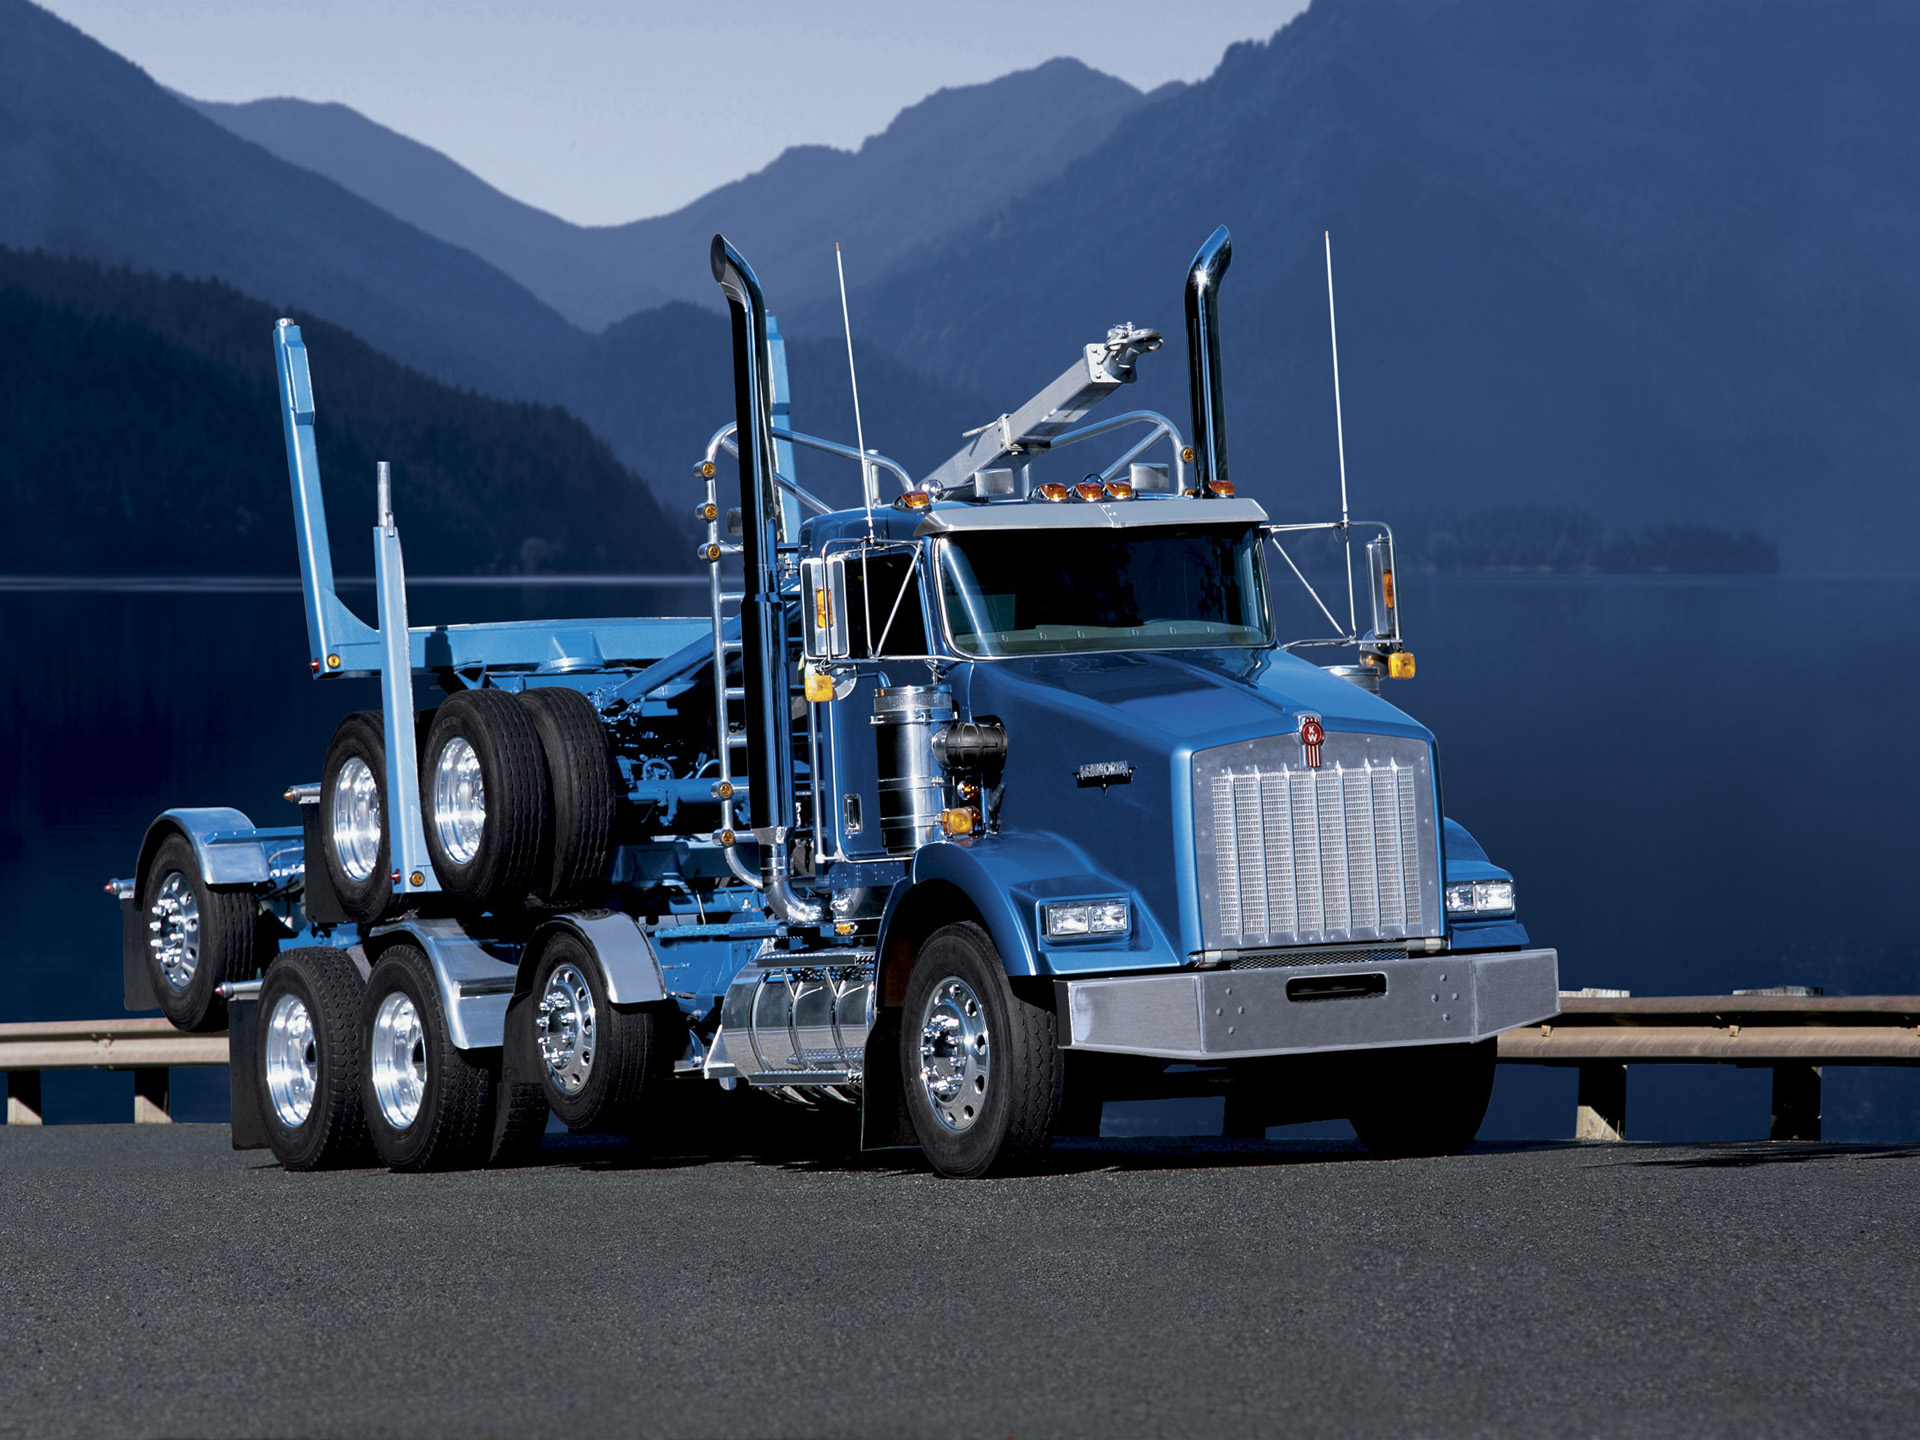 kenworth images - photo #46